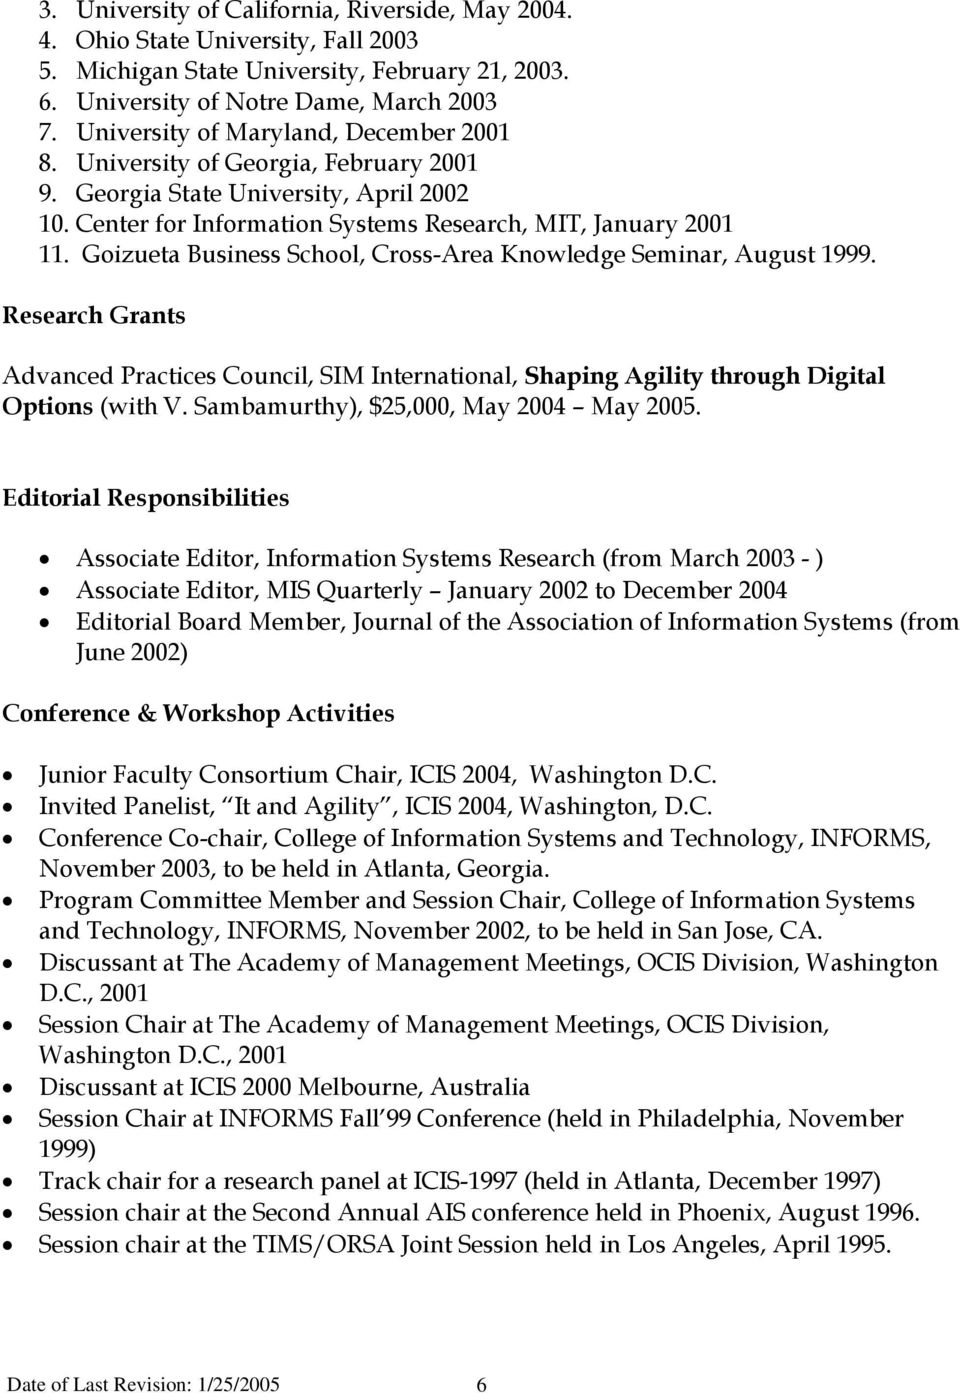 Goizueta Business School, Cross-Area Knowledge Seminar, August 1999. Research Grants Advanced Practices Council, SIM International, Shaping Agility through Digital Options (with V.